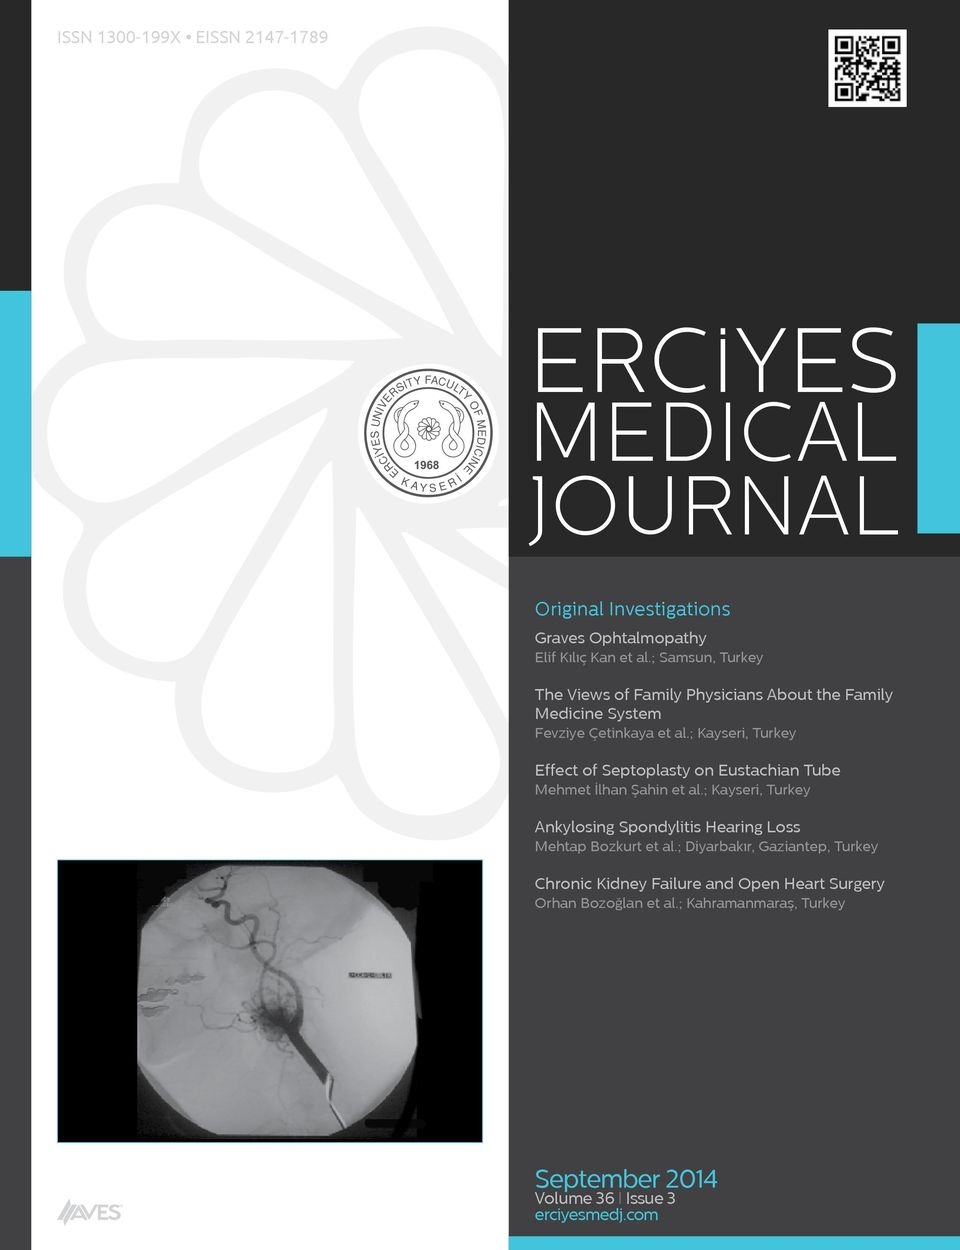 ; Kayseri, Turkey Effect of Septoplasty on Eustachian Tube Mehmet İlhan Şahin et al.